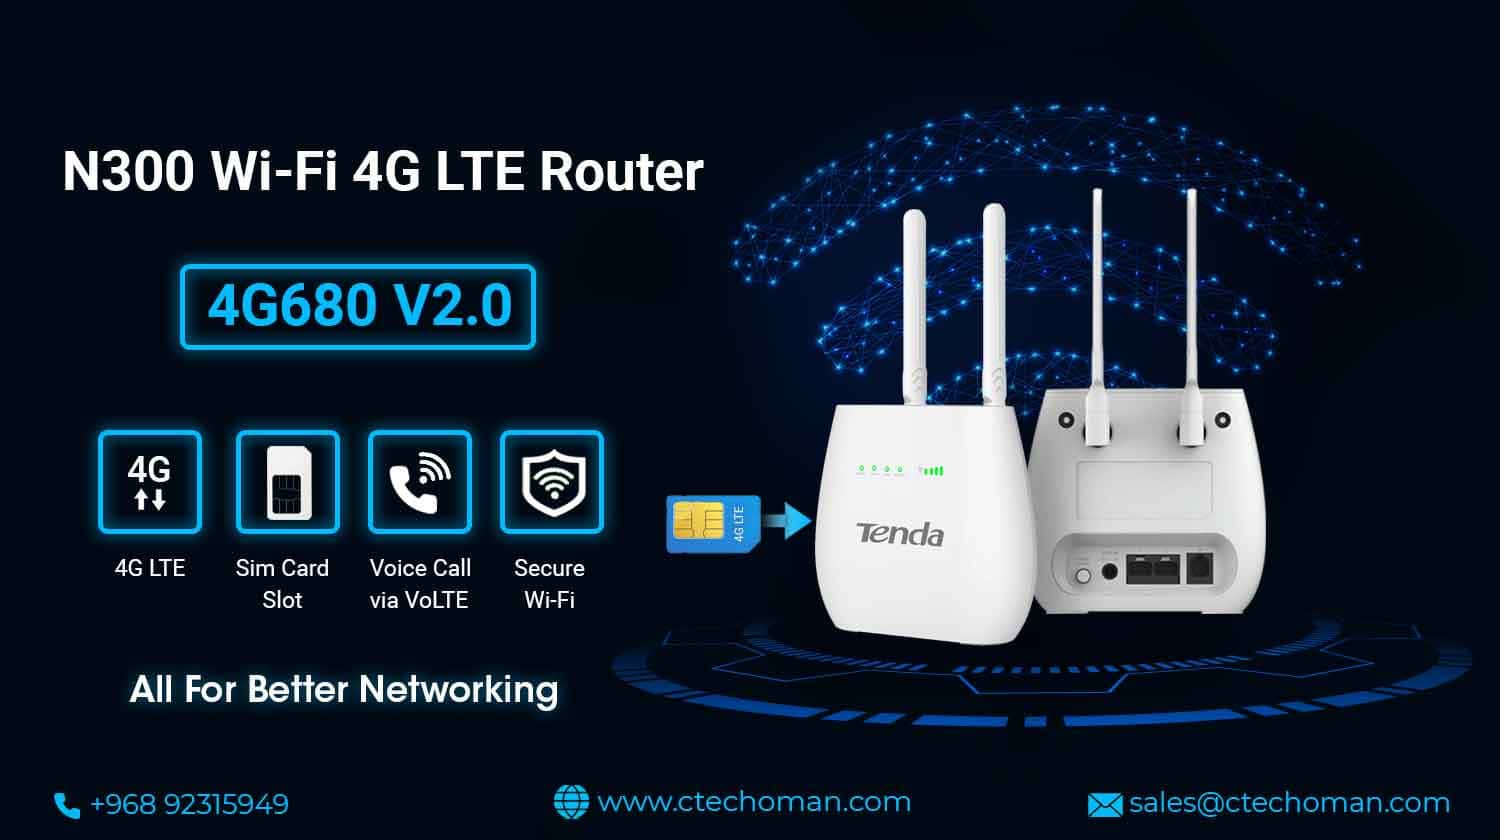 N300 Wi-Fi 4G LTE Router